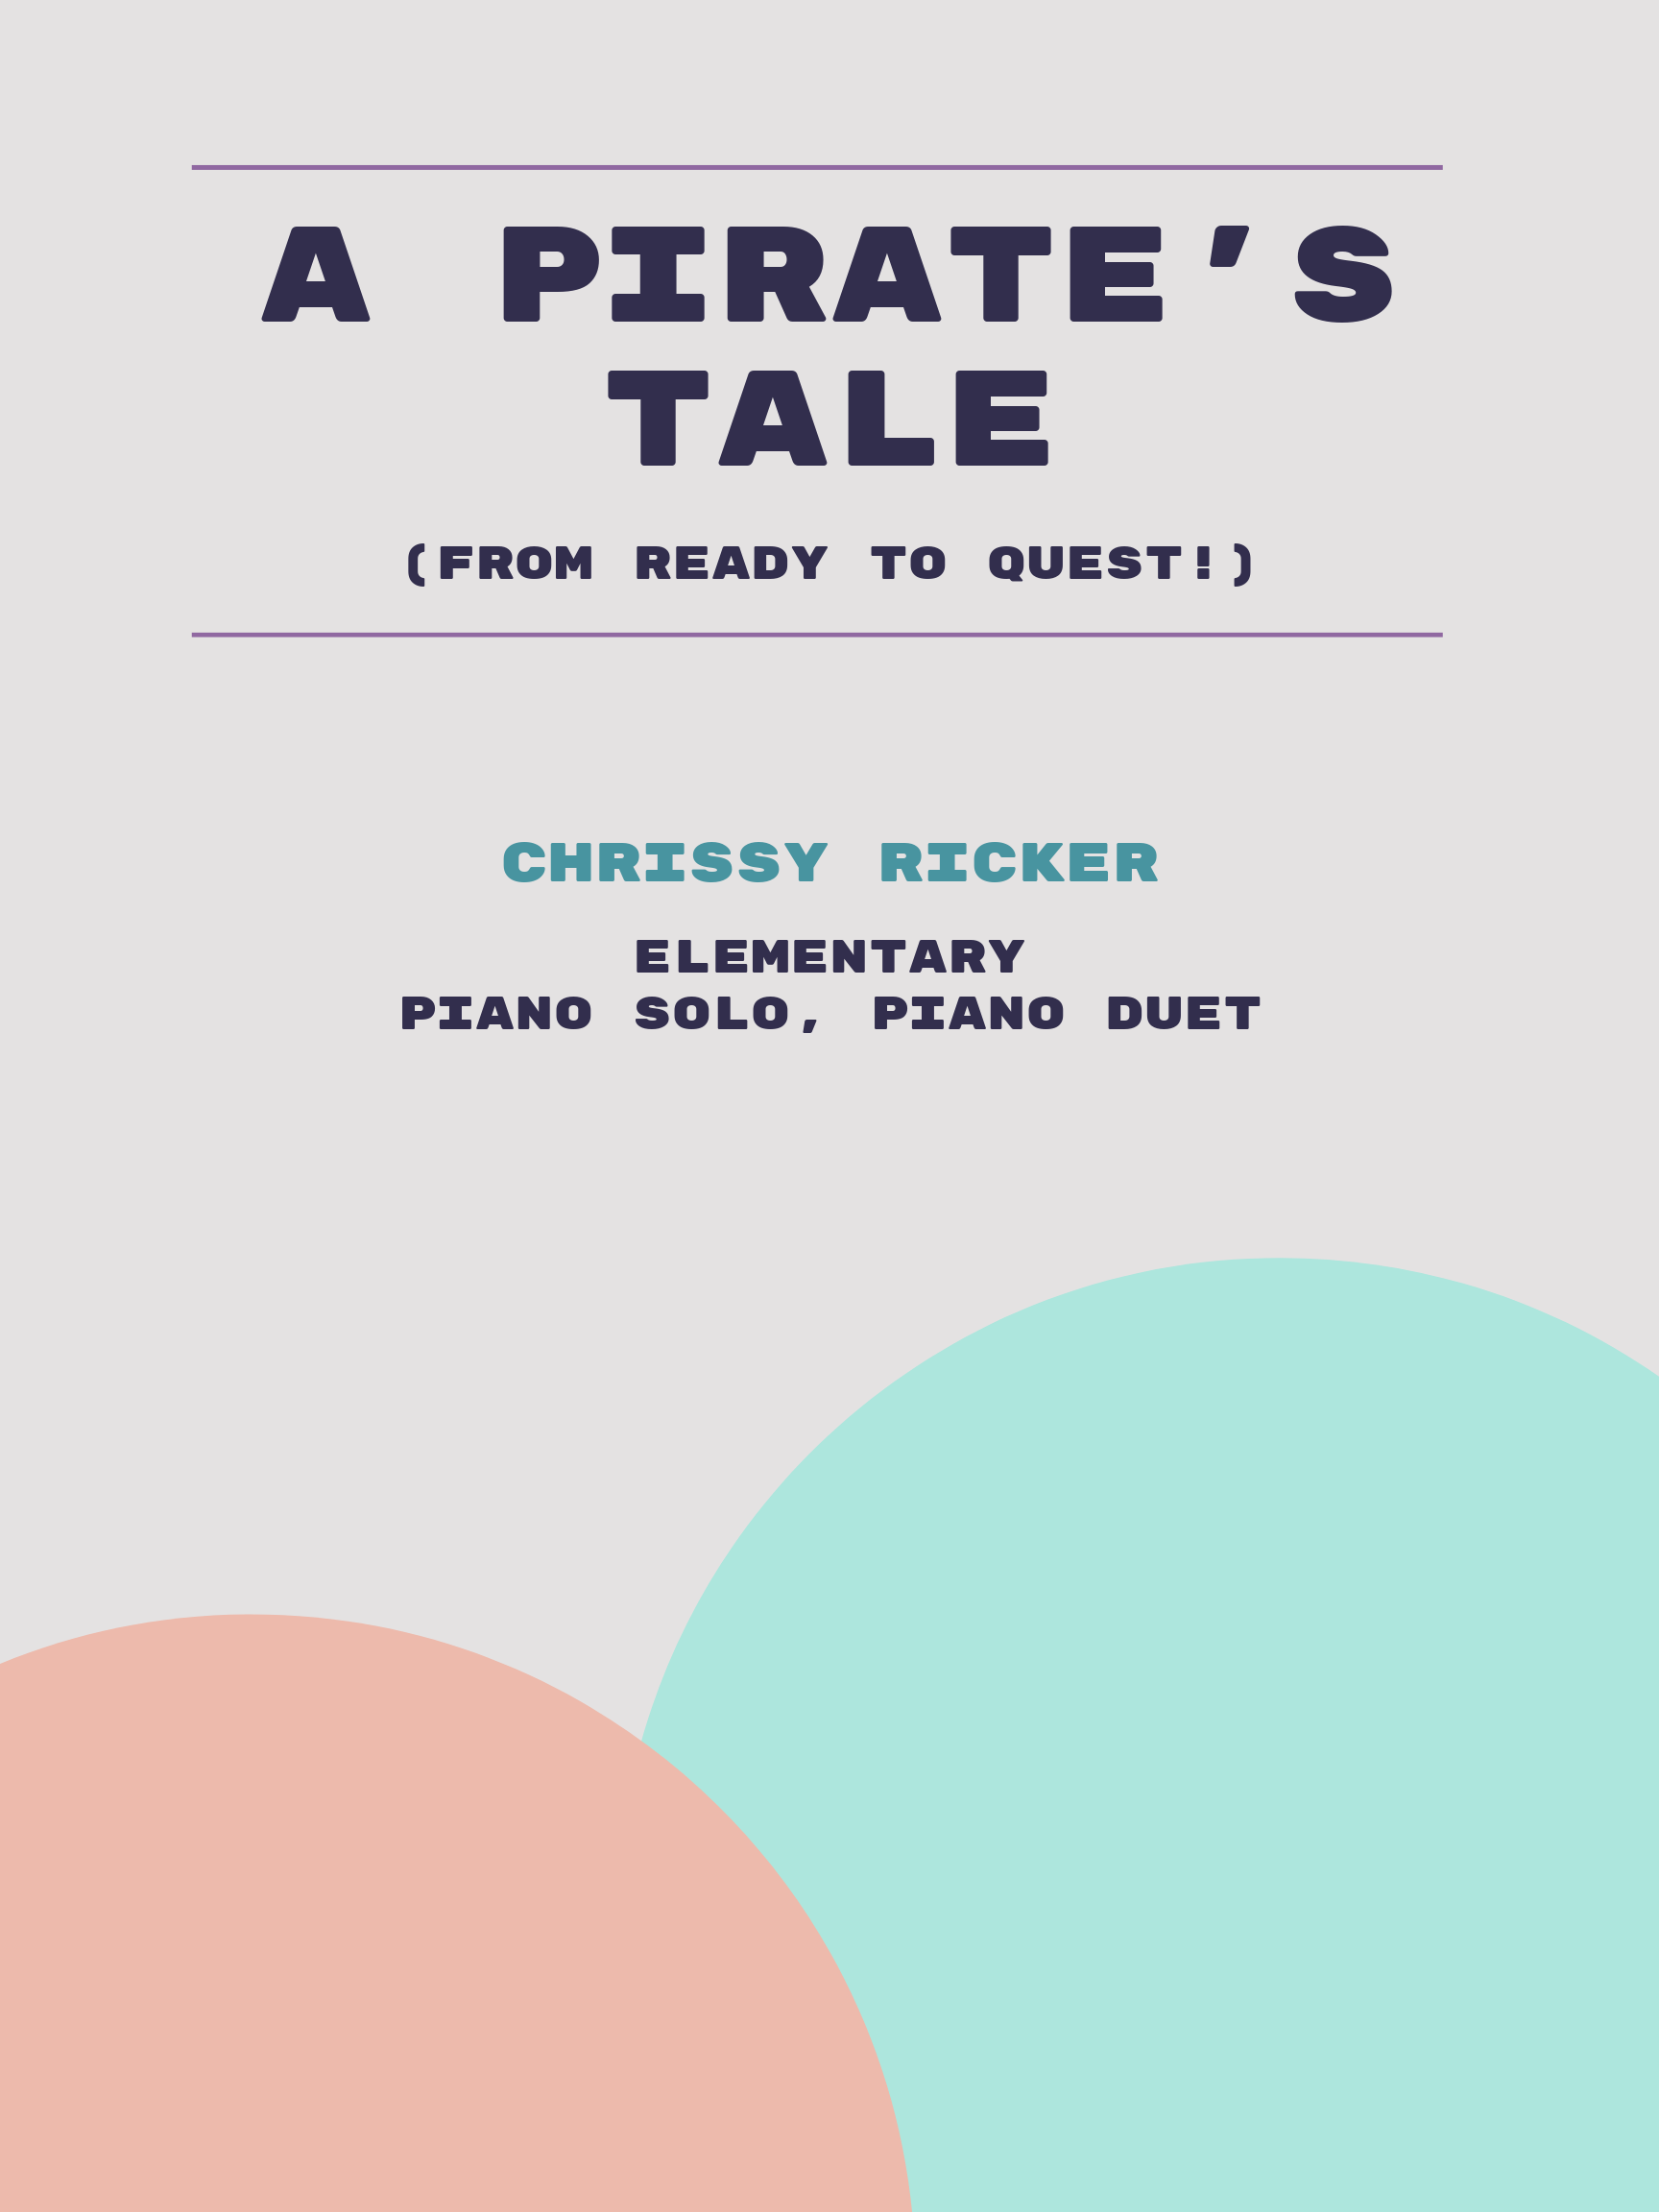 A Pirate's Tale by Chrissy Ricker